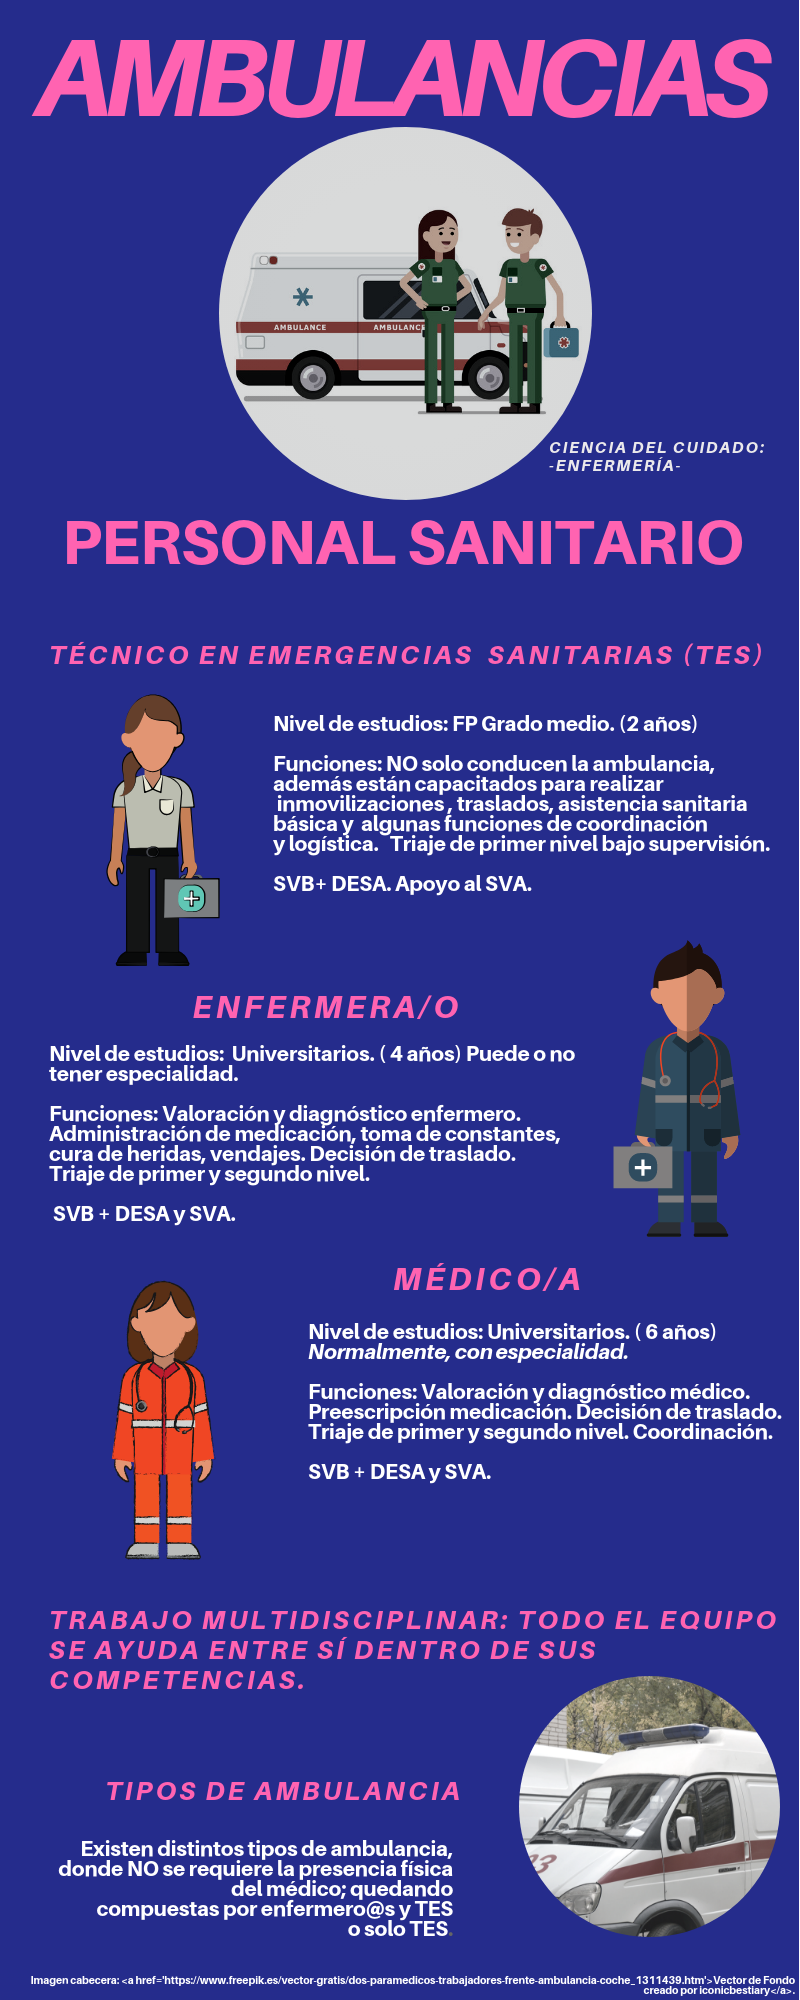 AMBULANCIAS (2)